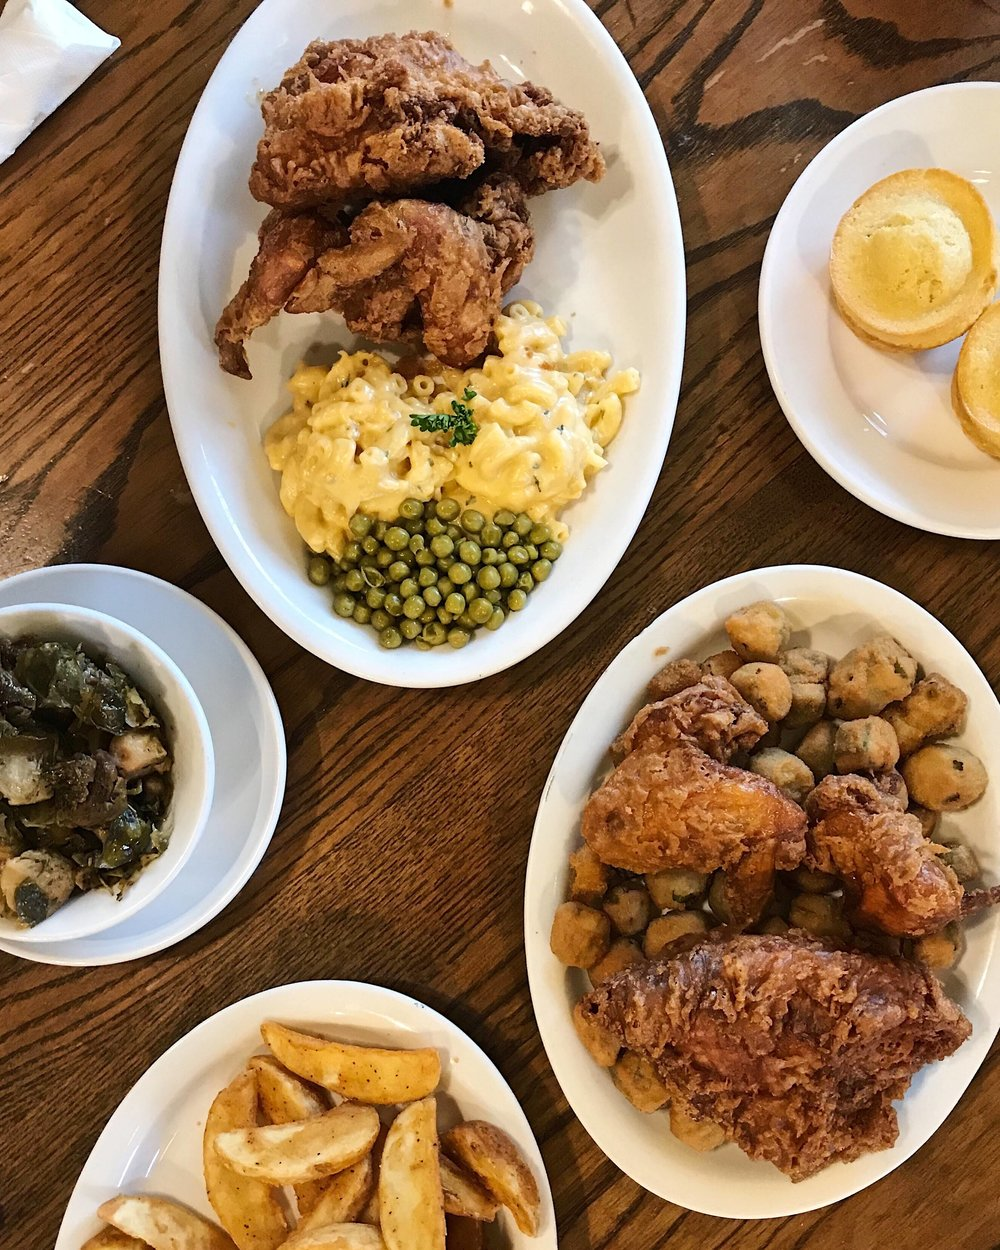 Our spread at Willie Mae's